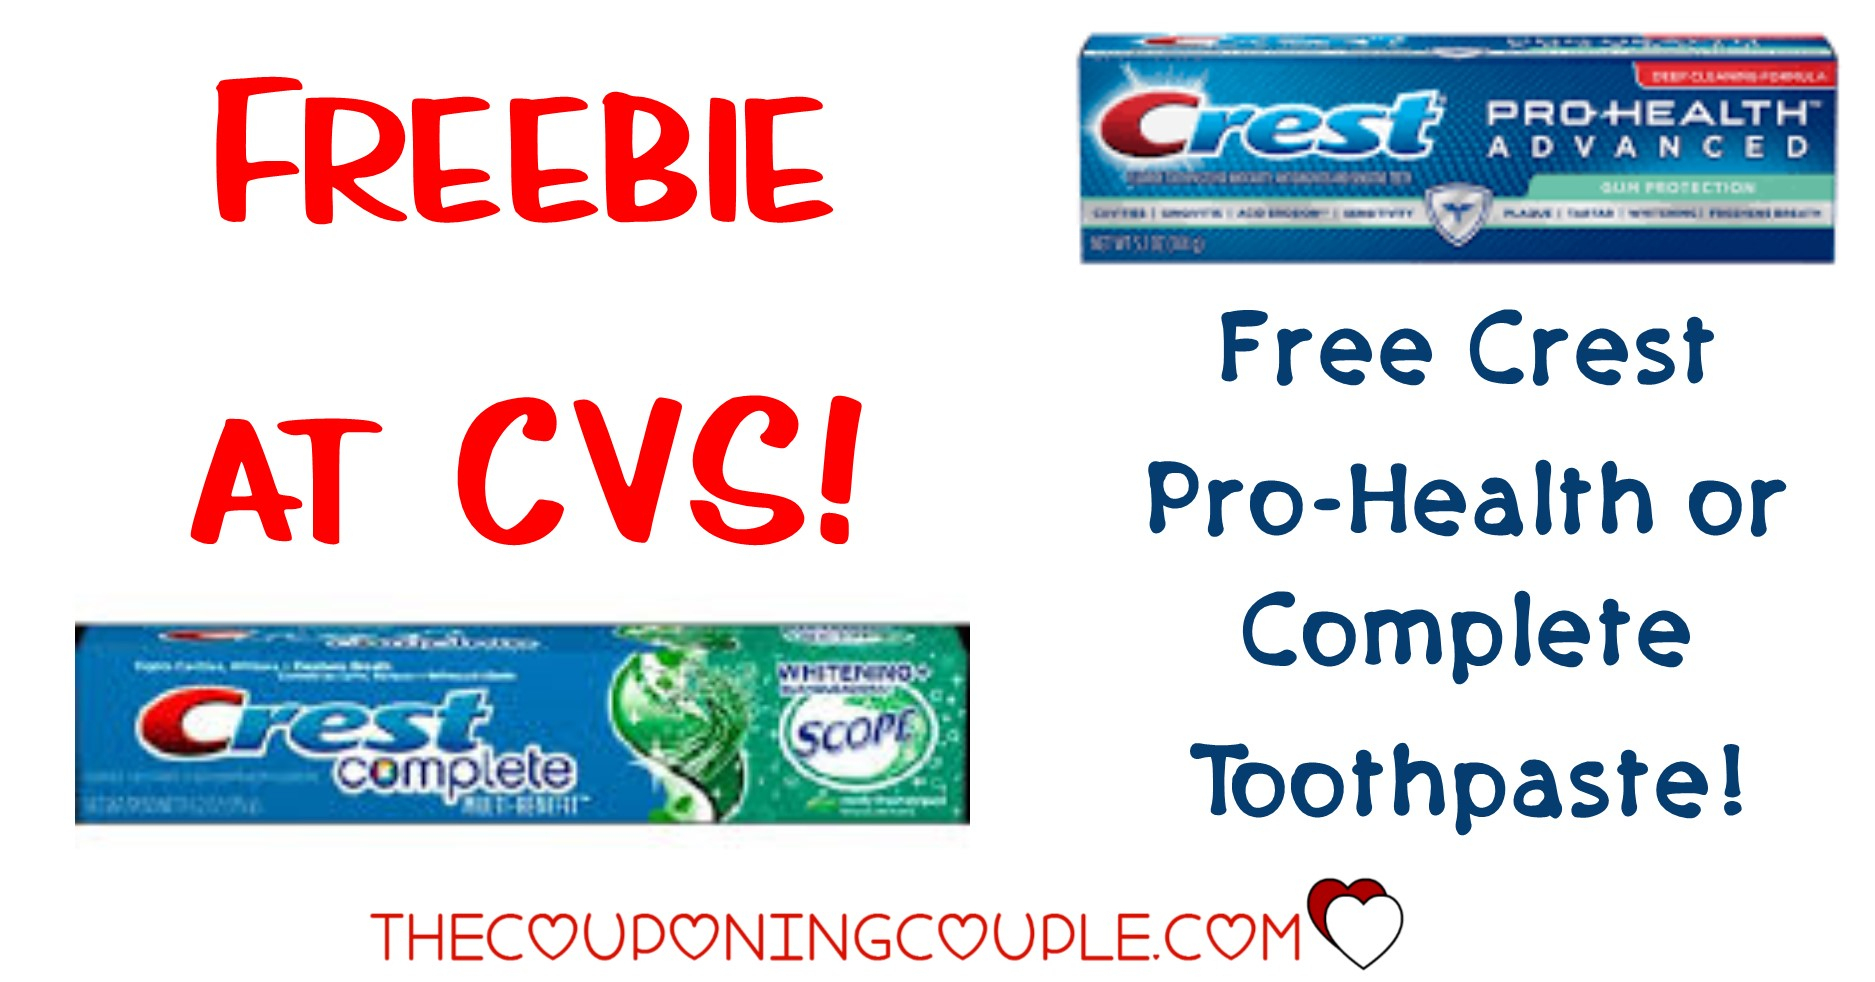 Free! Crest Toothpaste At Cvs! Easy Deal! - Free Printable Crest Coupons